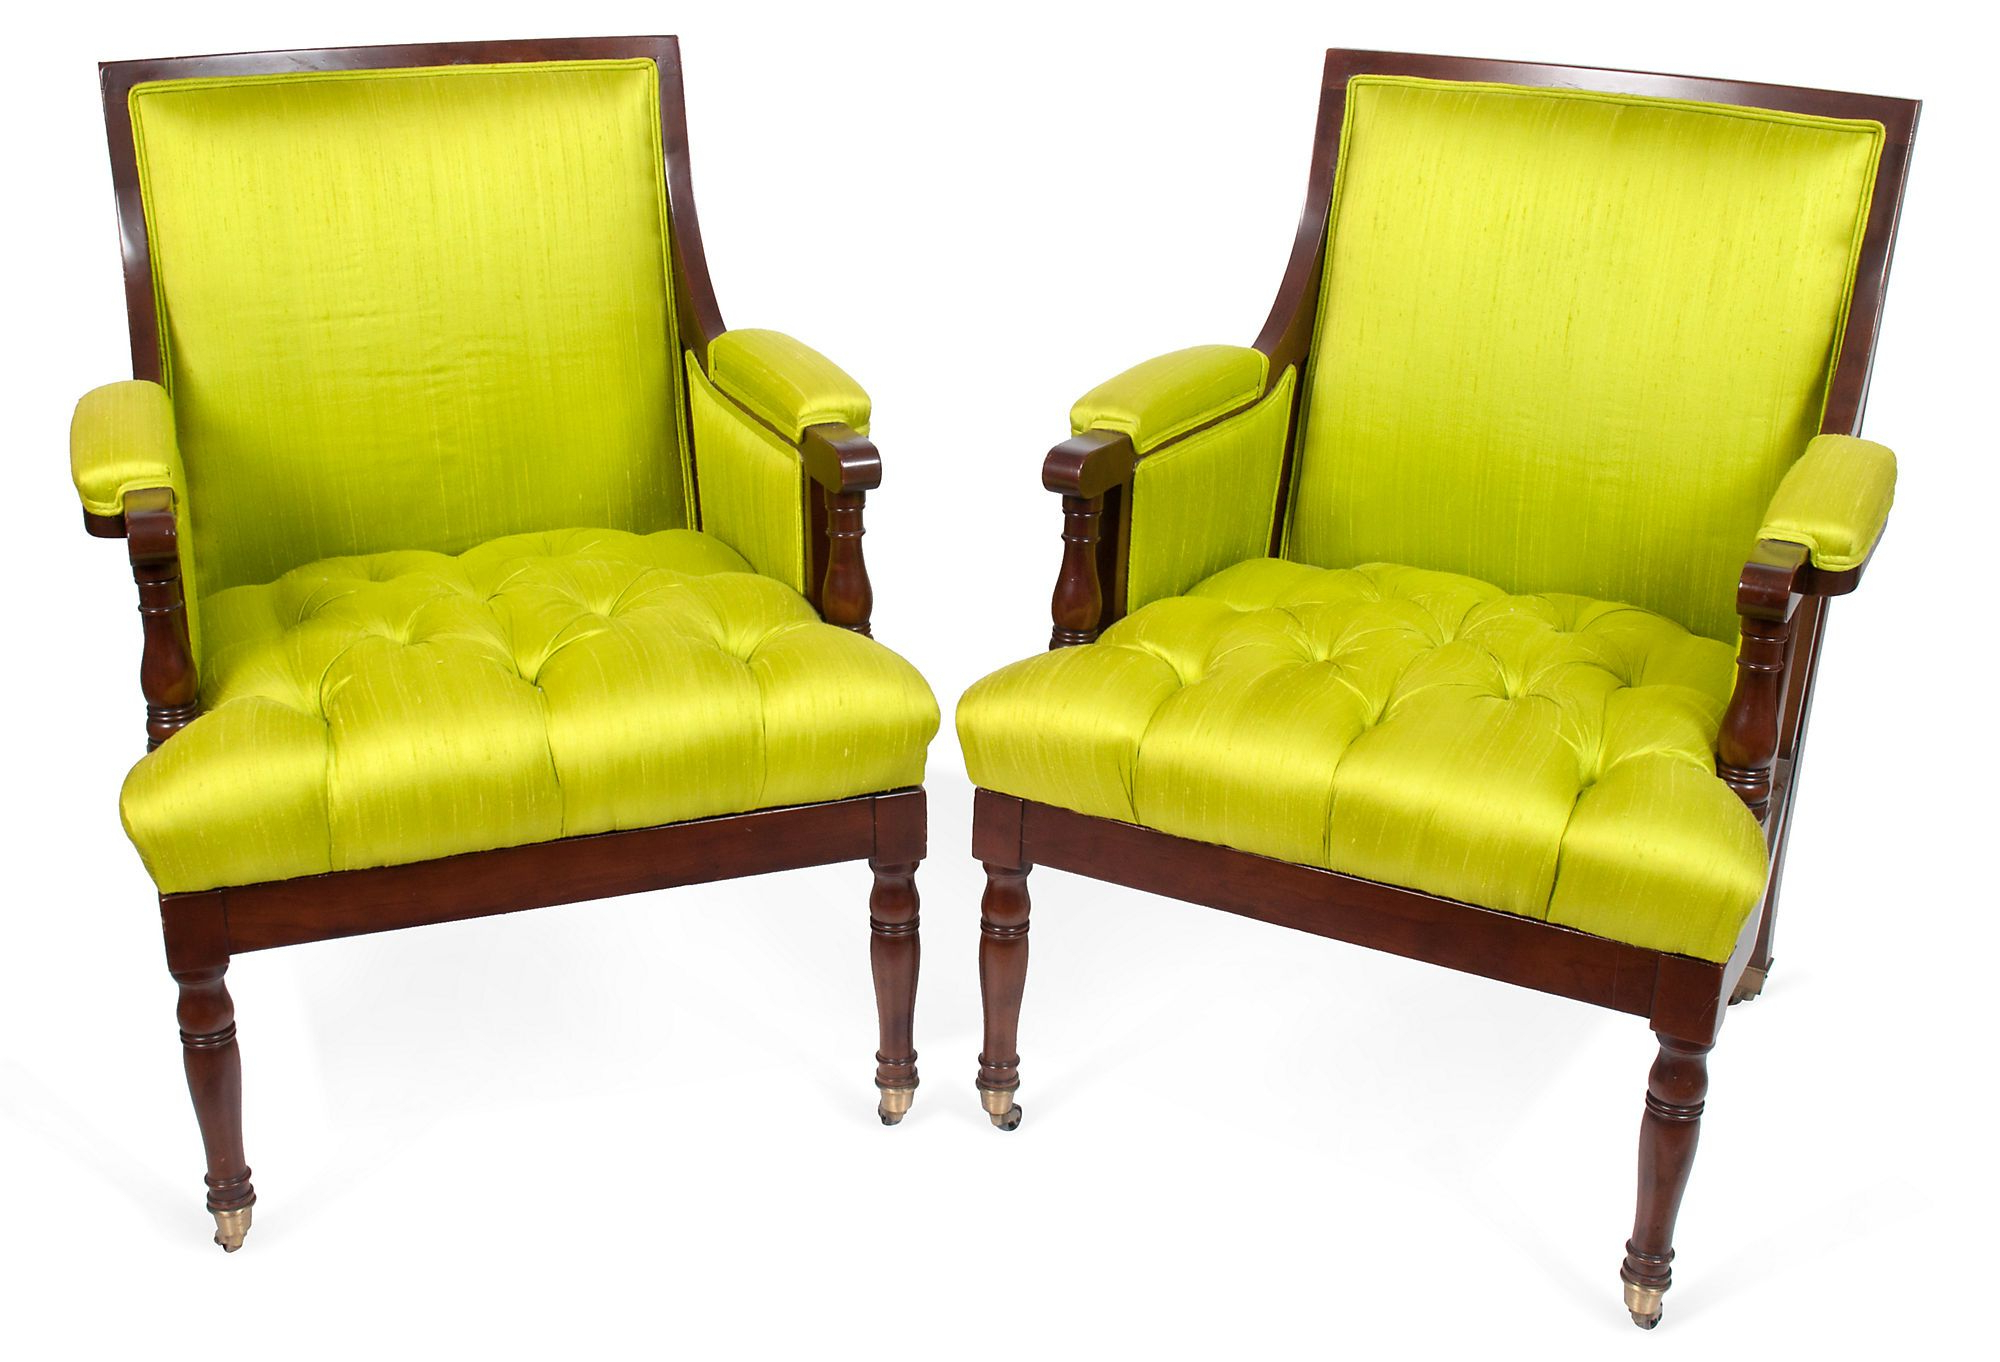 Pair Of Mahogany Baker Furniture Armchairs With Bright With Regard To Most Current Leppert Armchairs (View 20 of 20)